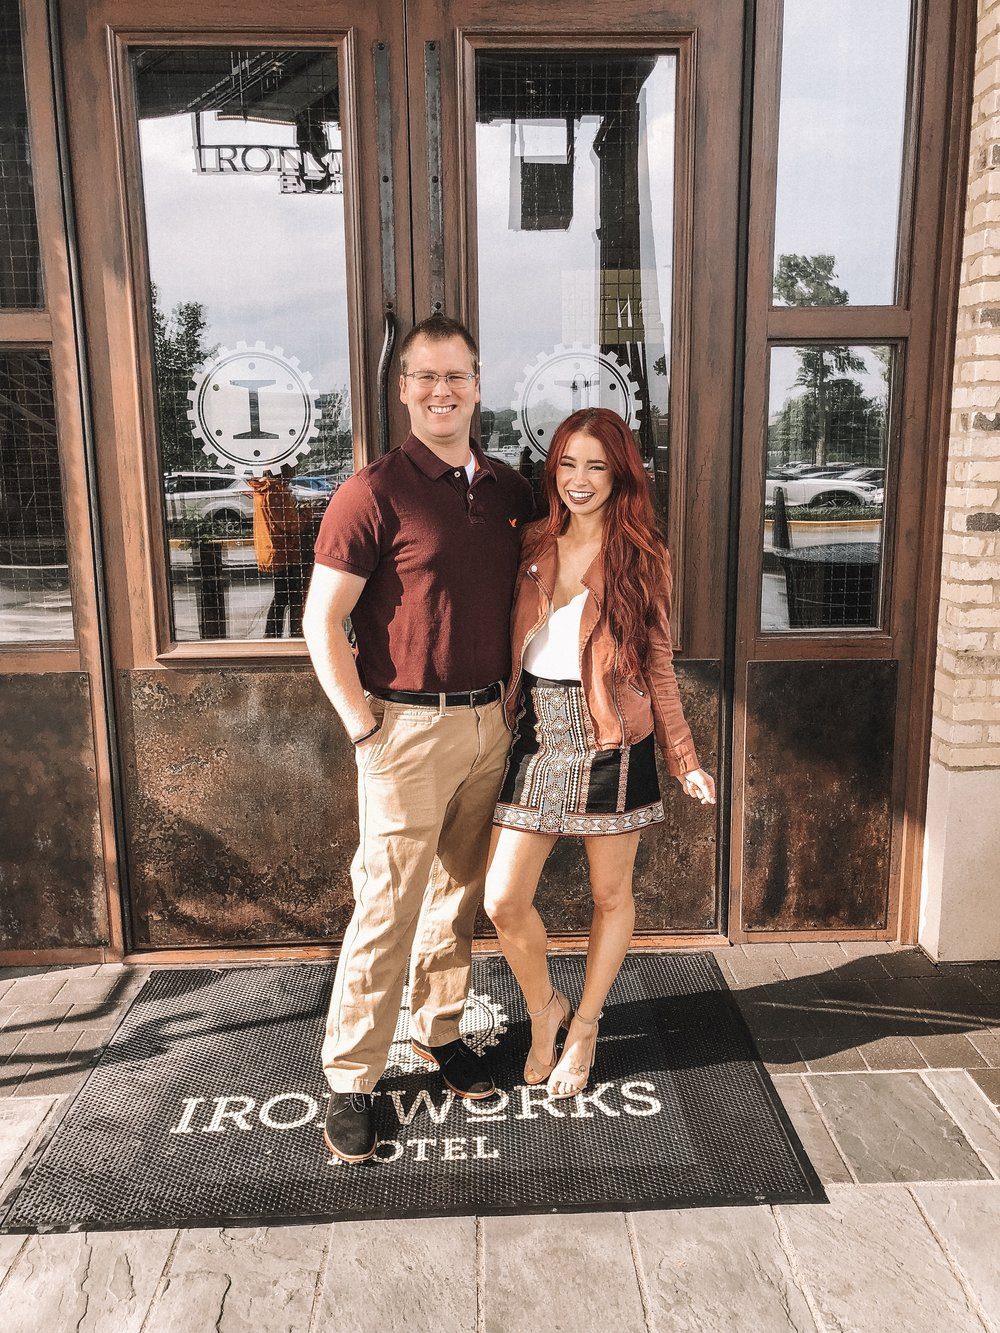 Ironworks Hotel Indy review featured by popular Indianapolis blogger, Trendy in Indy